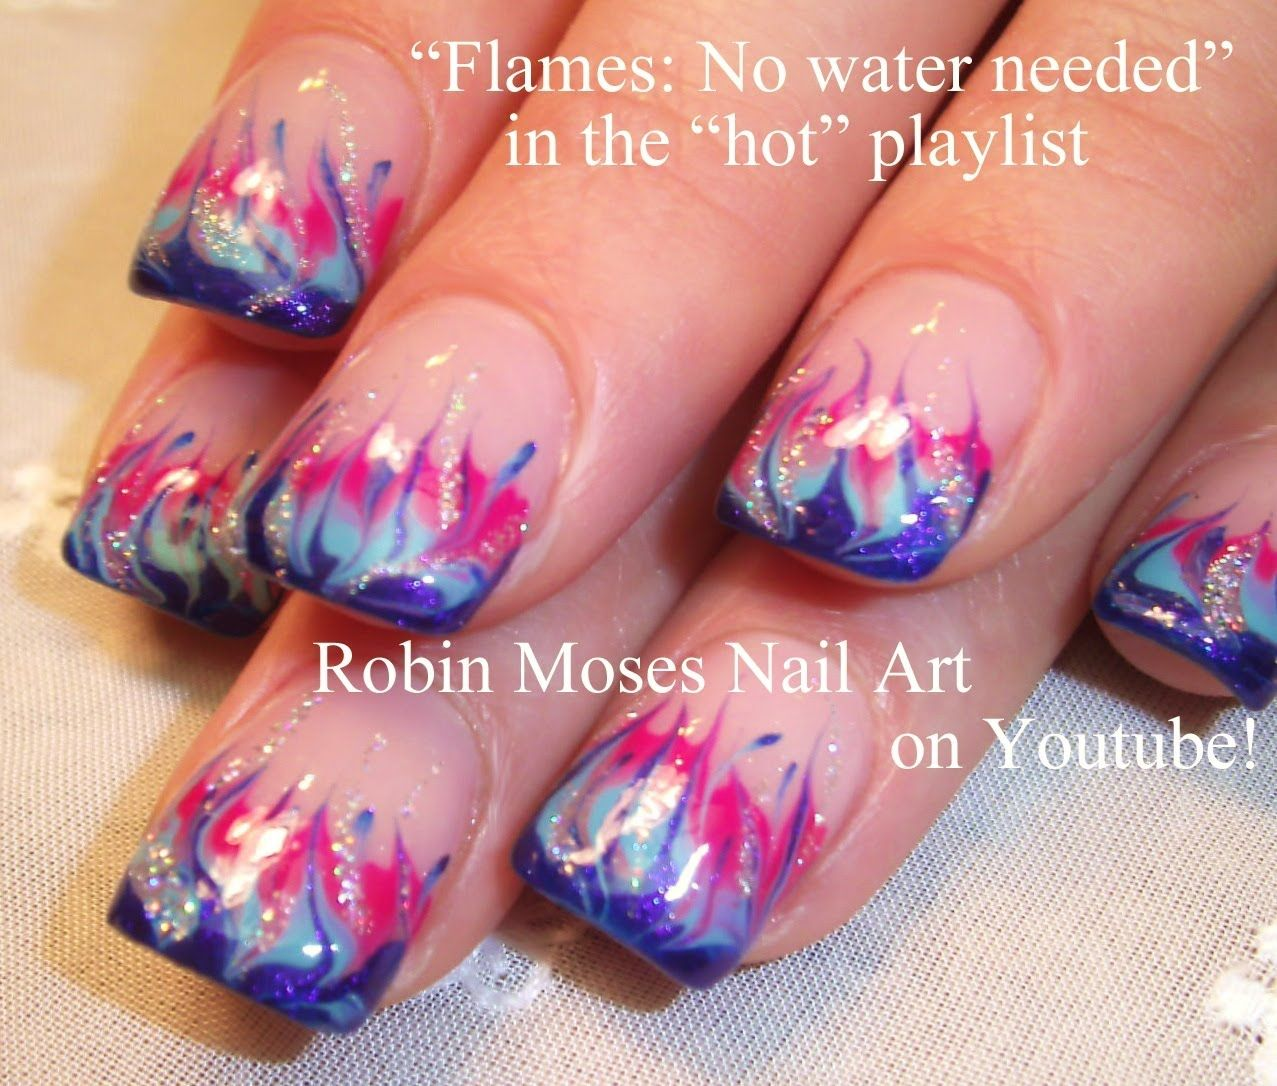 Robin Moses Nail Art Designs: Easy Flame Nail Art - No Water Marble Technique